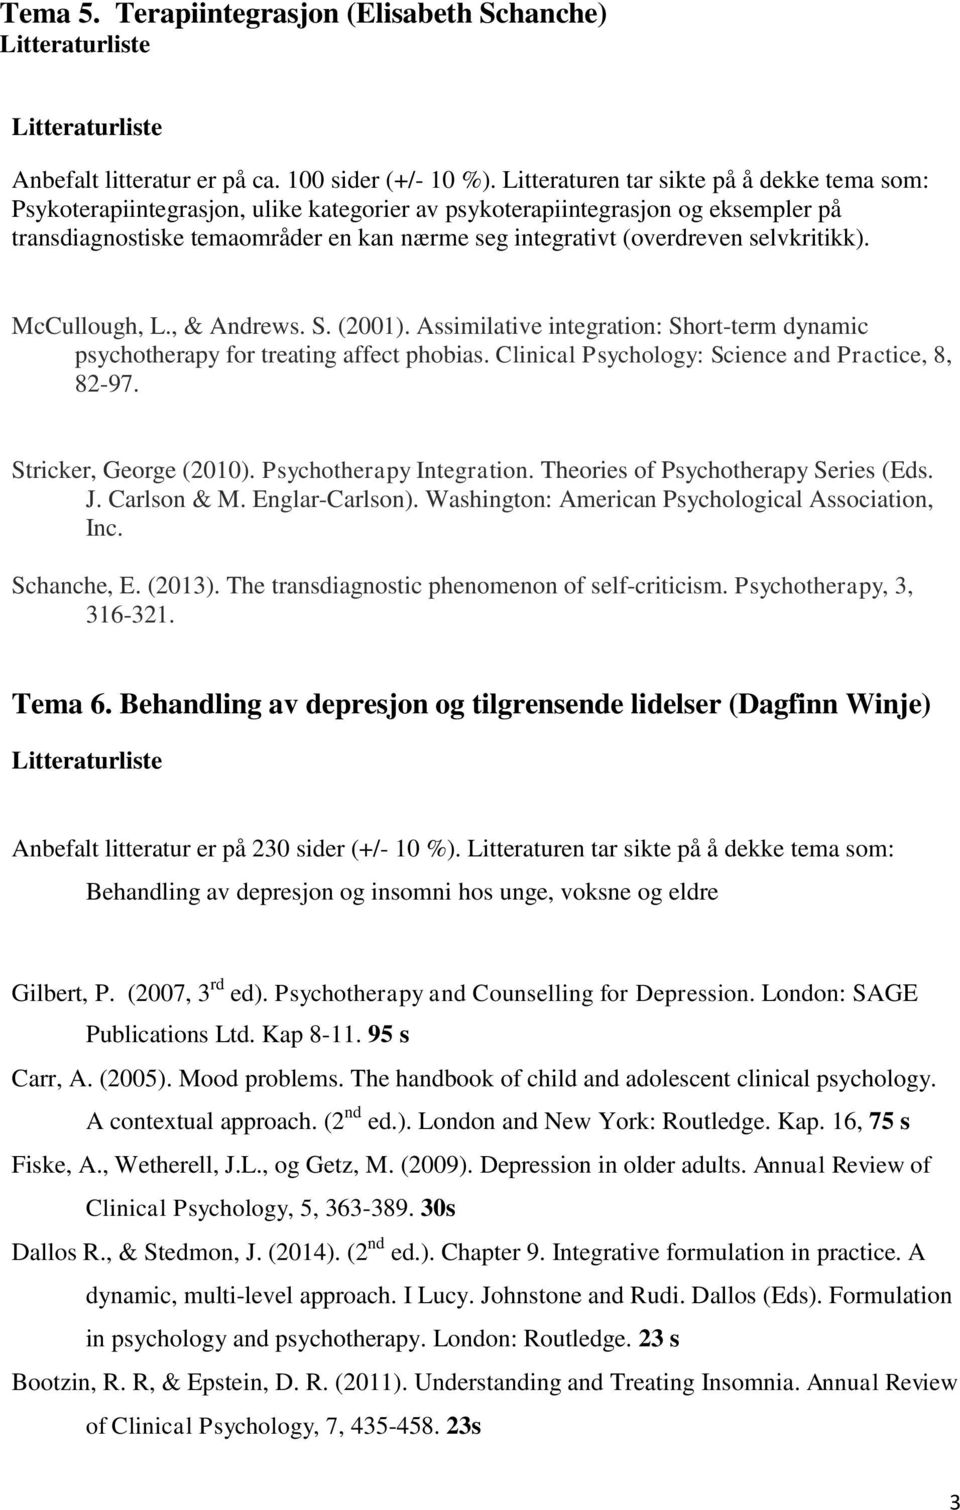 selvkritikk). McCullough, L., & Andrews. S. (2001). Assimilative integration: Short-term dynamic psychotherapy for treating affect phobias. Clinical Psychology: Science and Practice, 8, 82-97.